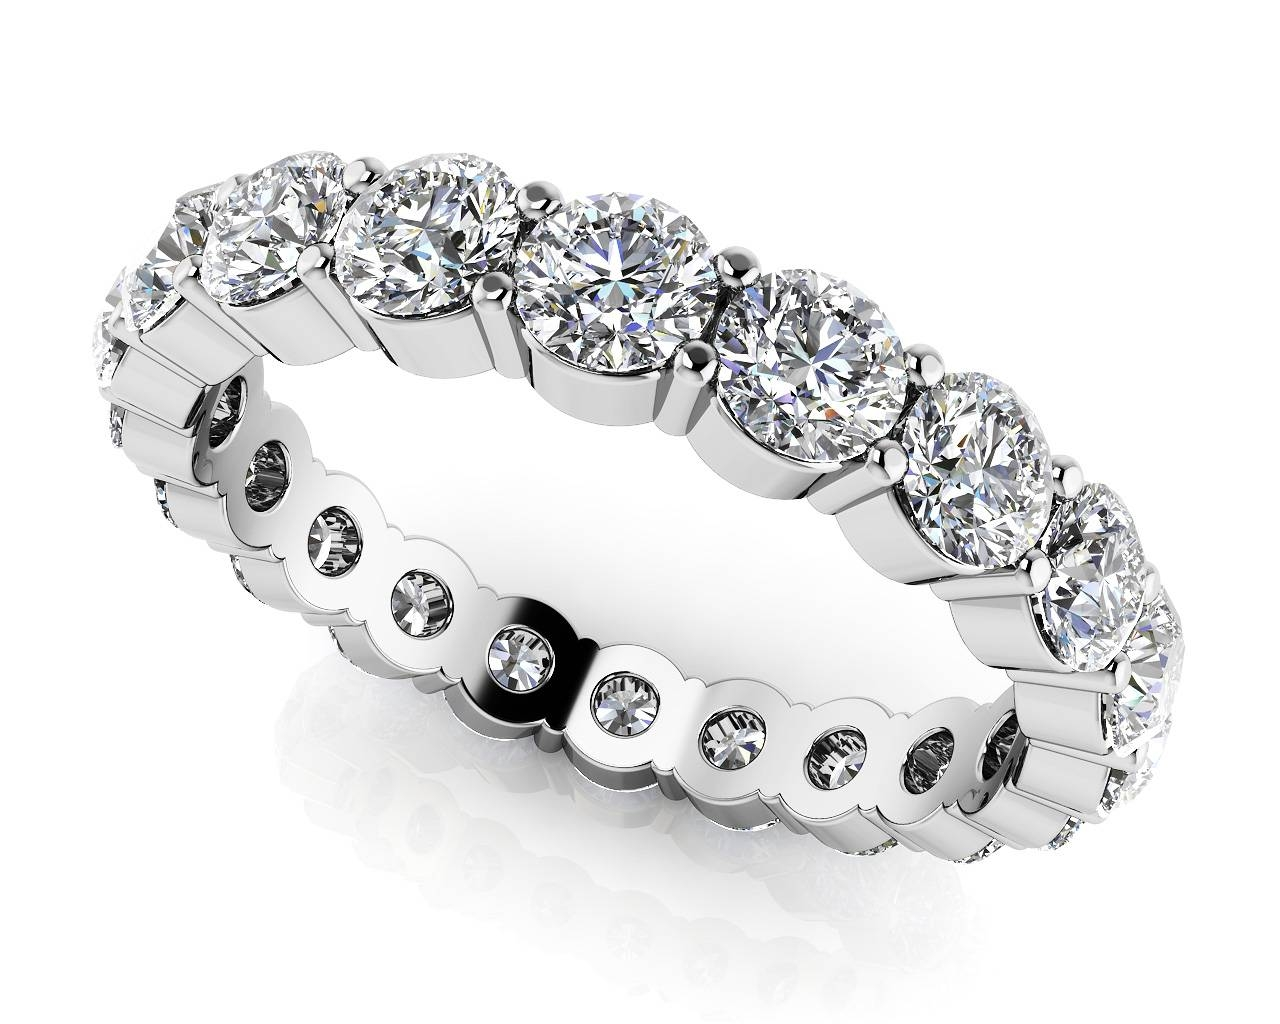 Design Your Own Diamond Anniversary Ring & Eternity Ring Throughout Most Up To Date 3 Carat Diamond Anniversary Rings (View 6 of 25)